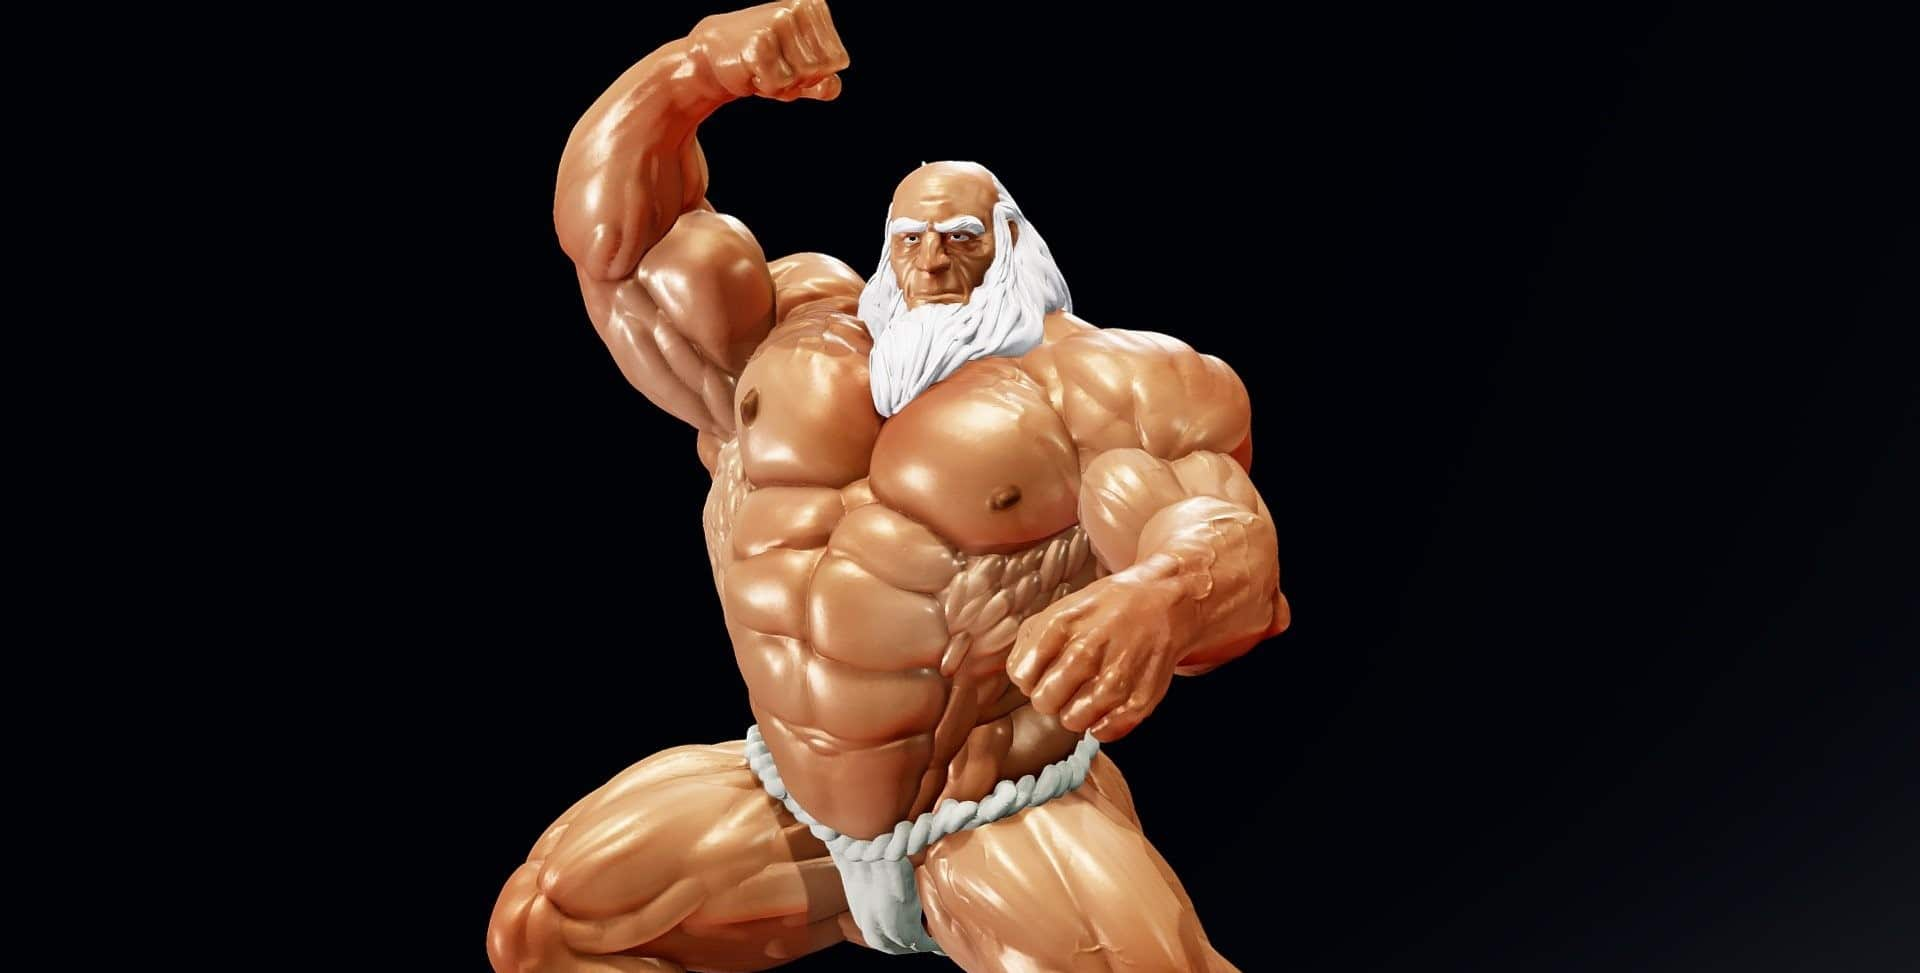 bodybuilders who started late in life